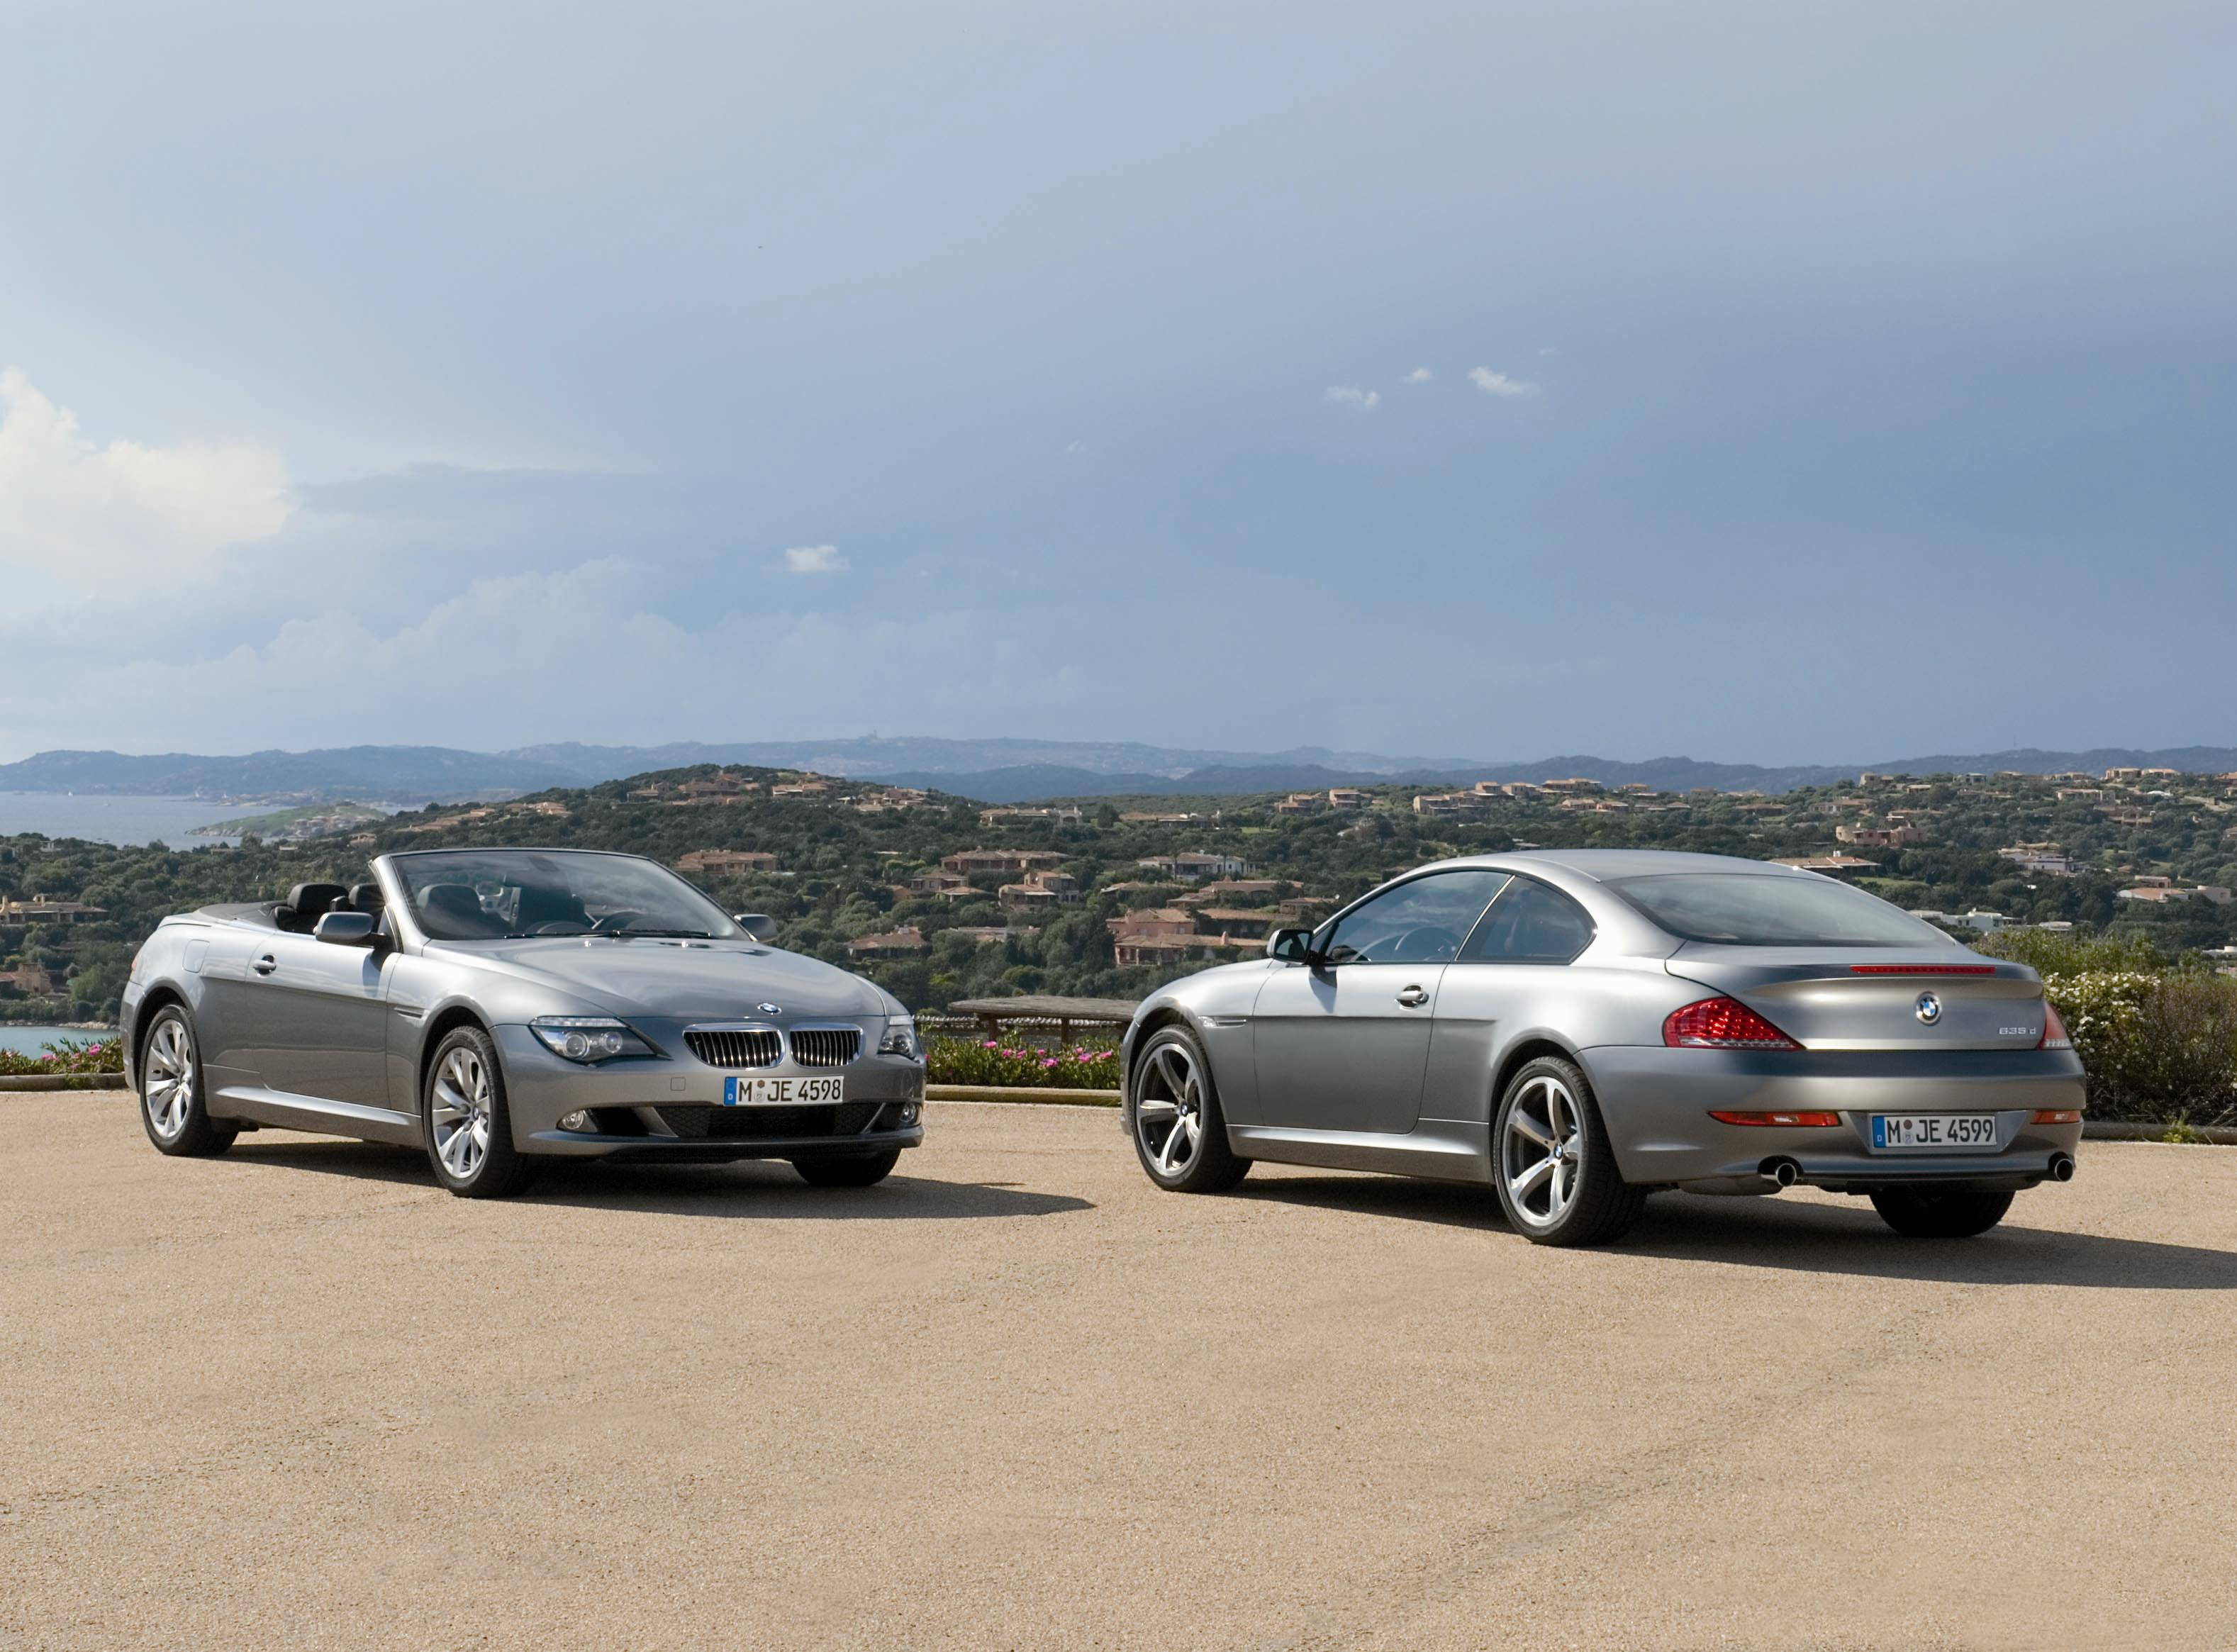 2008 BMW 635d Review - Top Speed